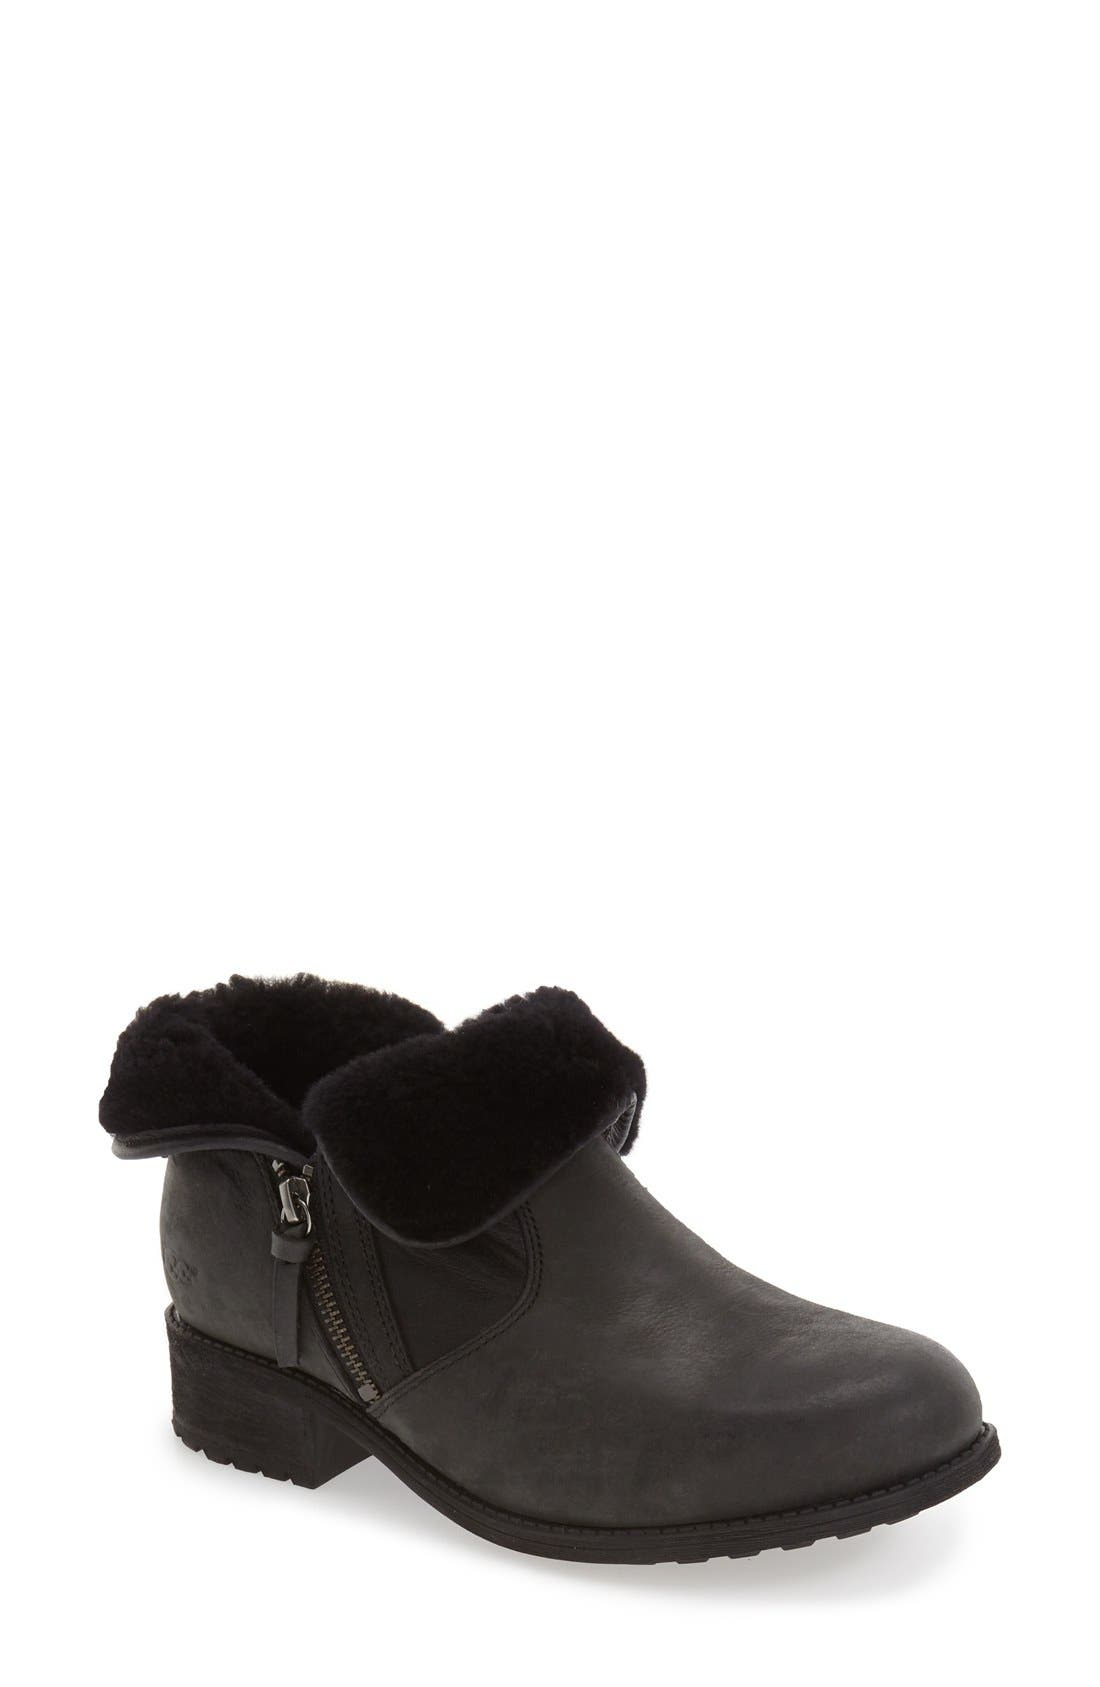 Lavelle Boot,                         Main,                         color, Black Leather